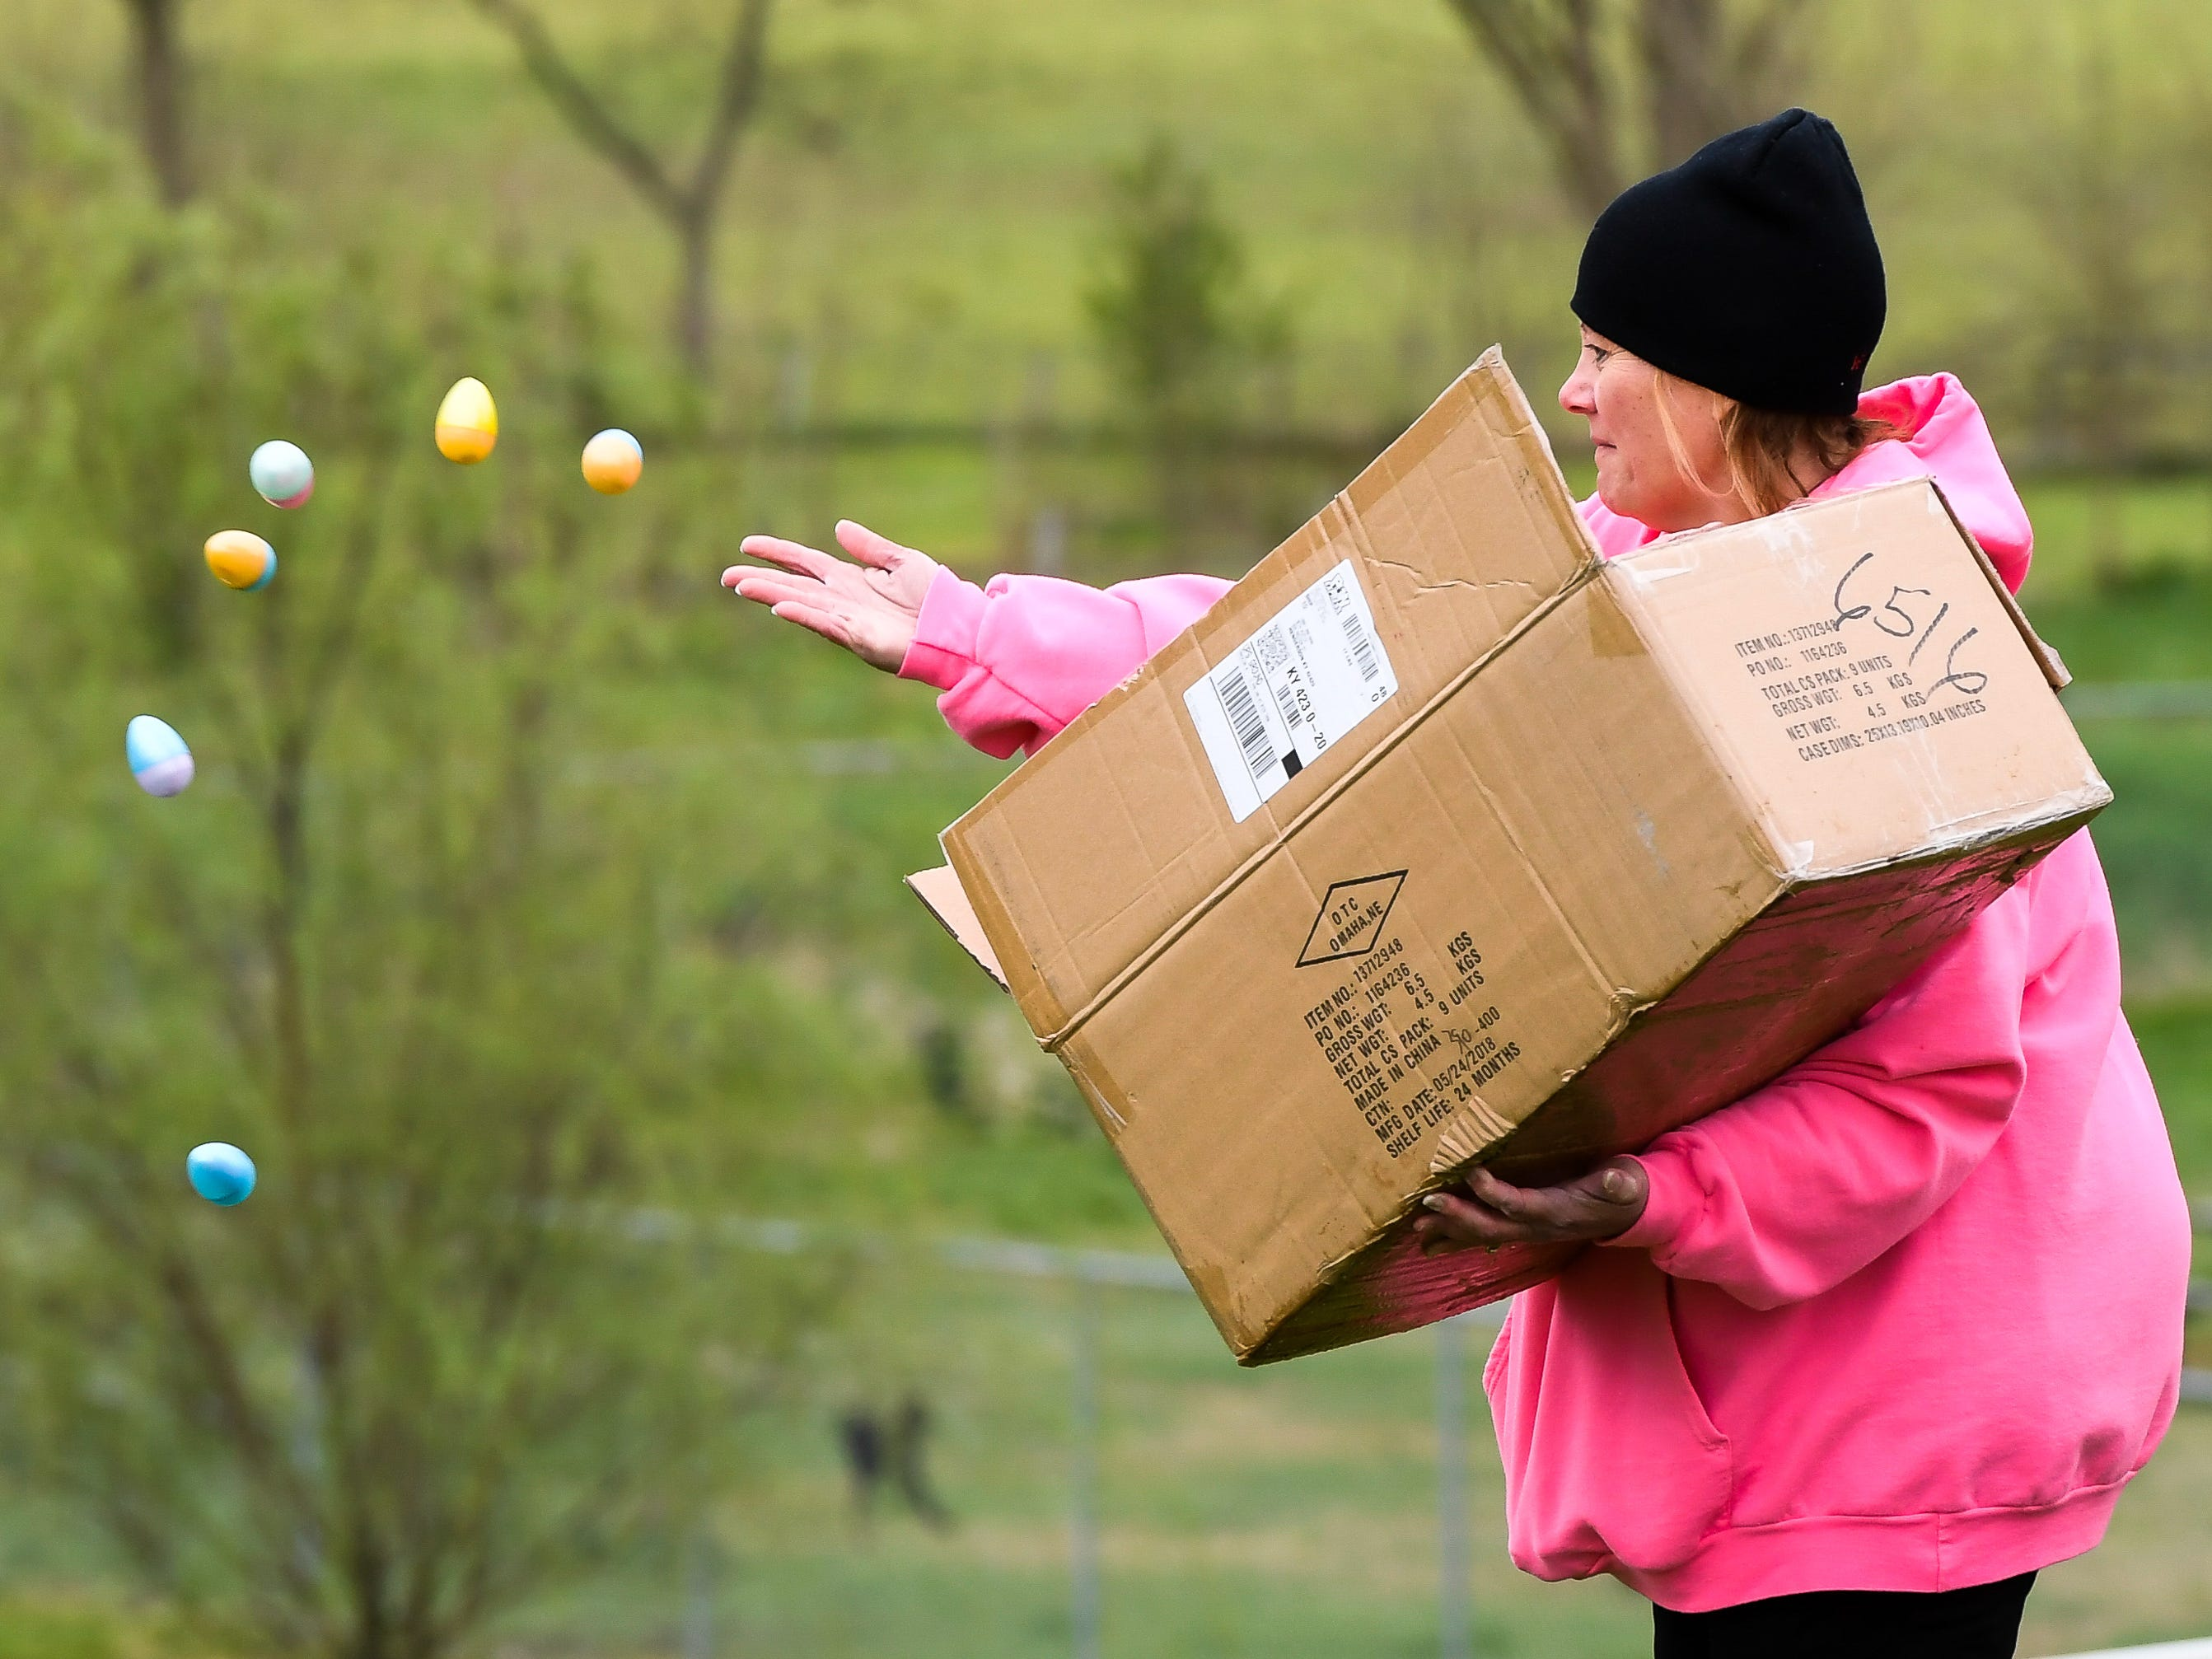 Beth Austin, with the parks department, helps distribute some of the more than 15,000 eggs to be hidden away in Community Park for the City of Henderson Parks and Recreation Department's annual Easter Egg Hunt Saturday, April 13, 2019.